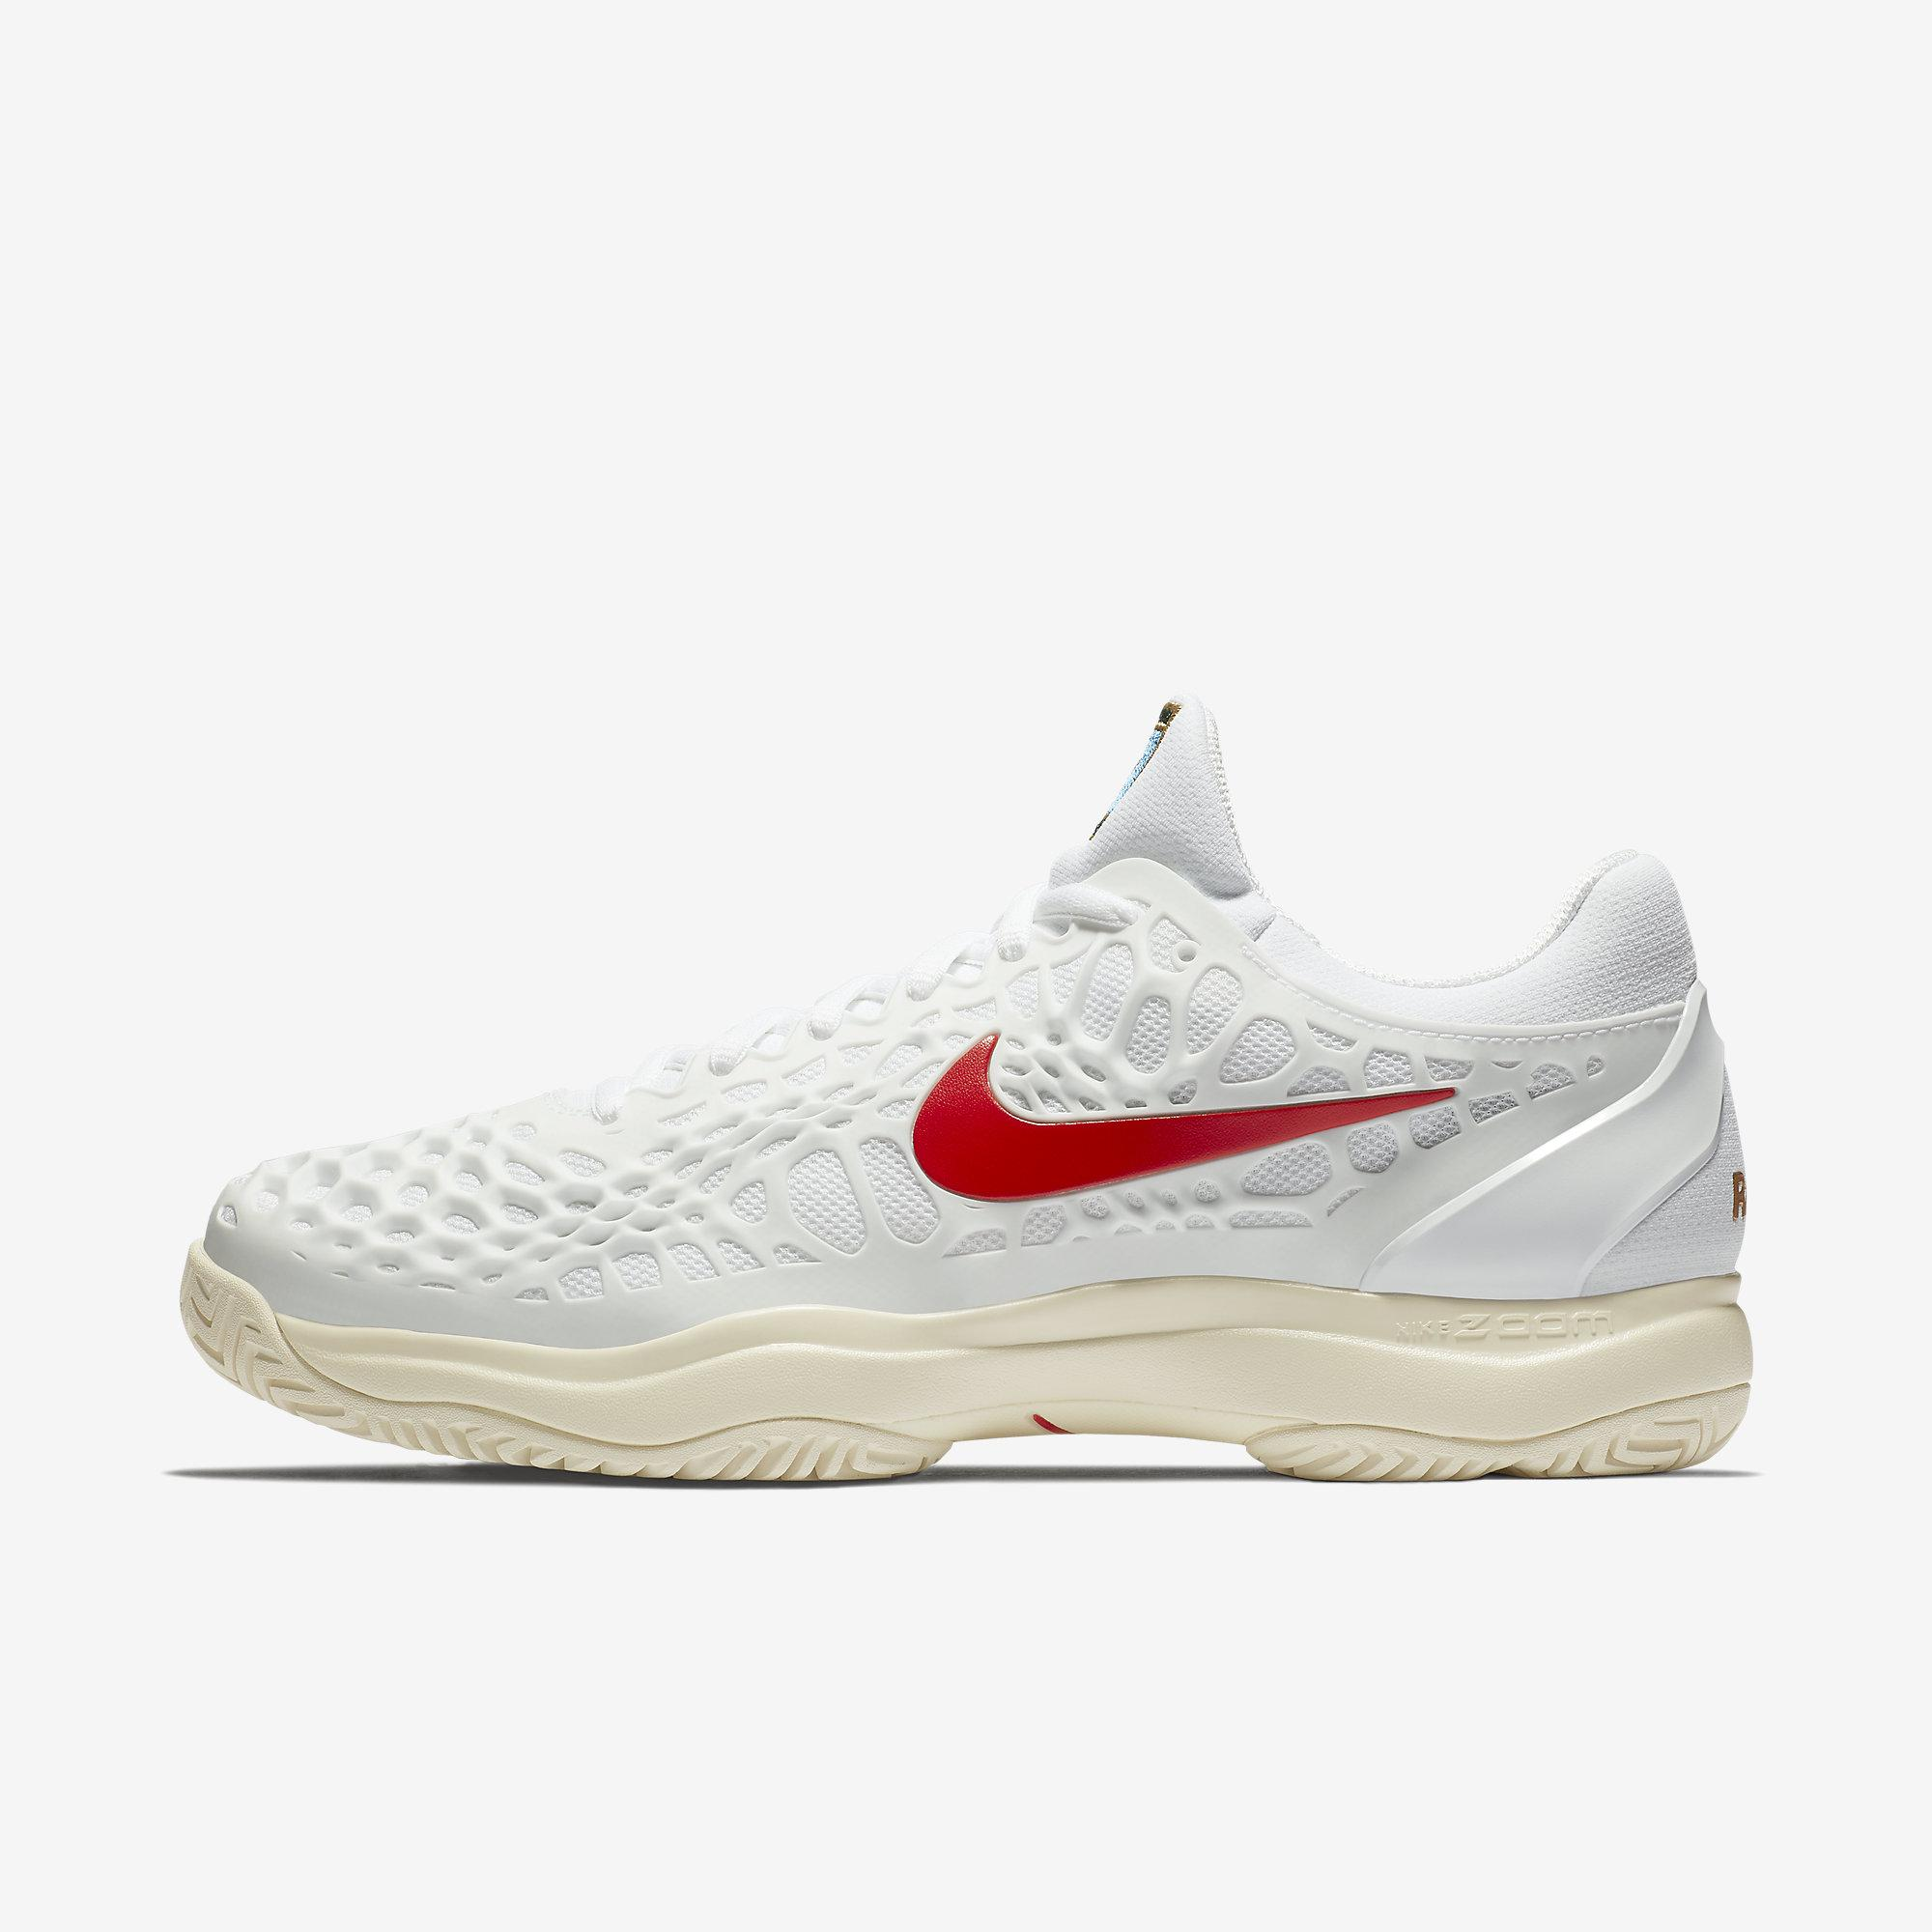 profesor grupo Diplomático  Nike Mens Zoom Cage 3 Rafa Tennis Shoes - White/Light Cream/Red -  Tennisnuts.com